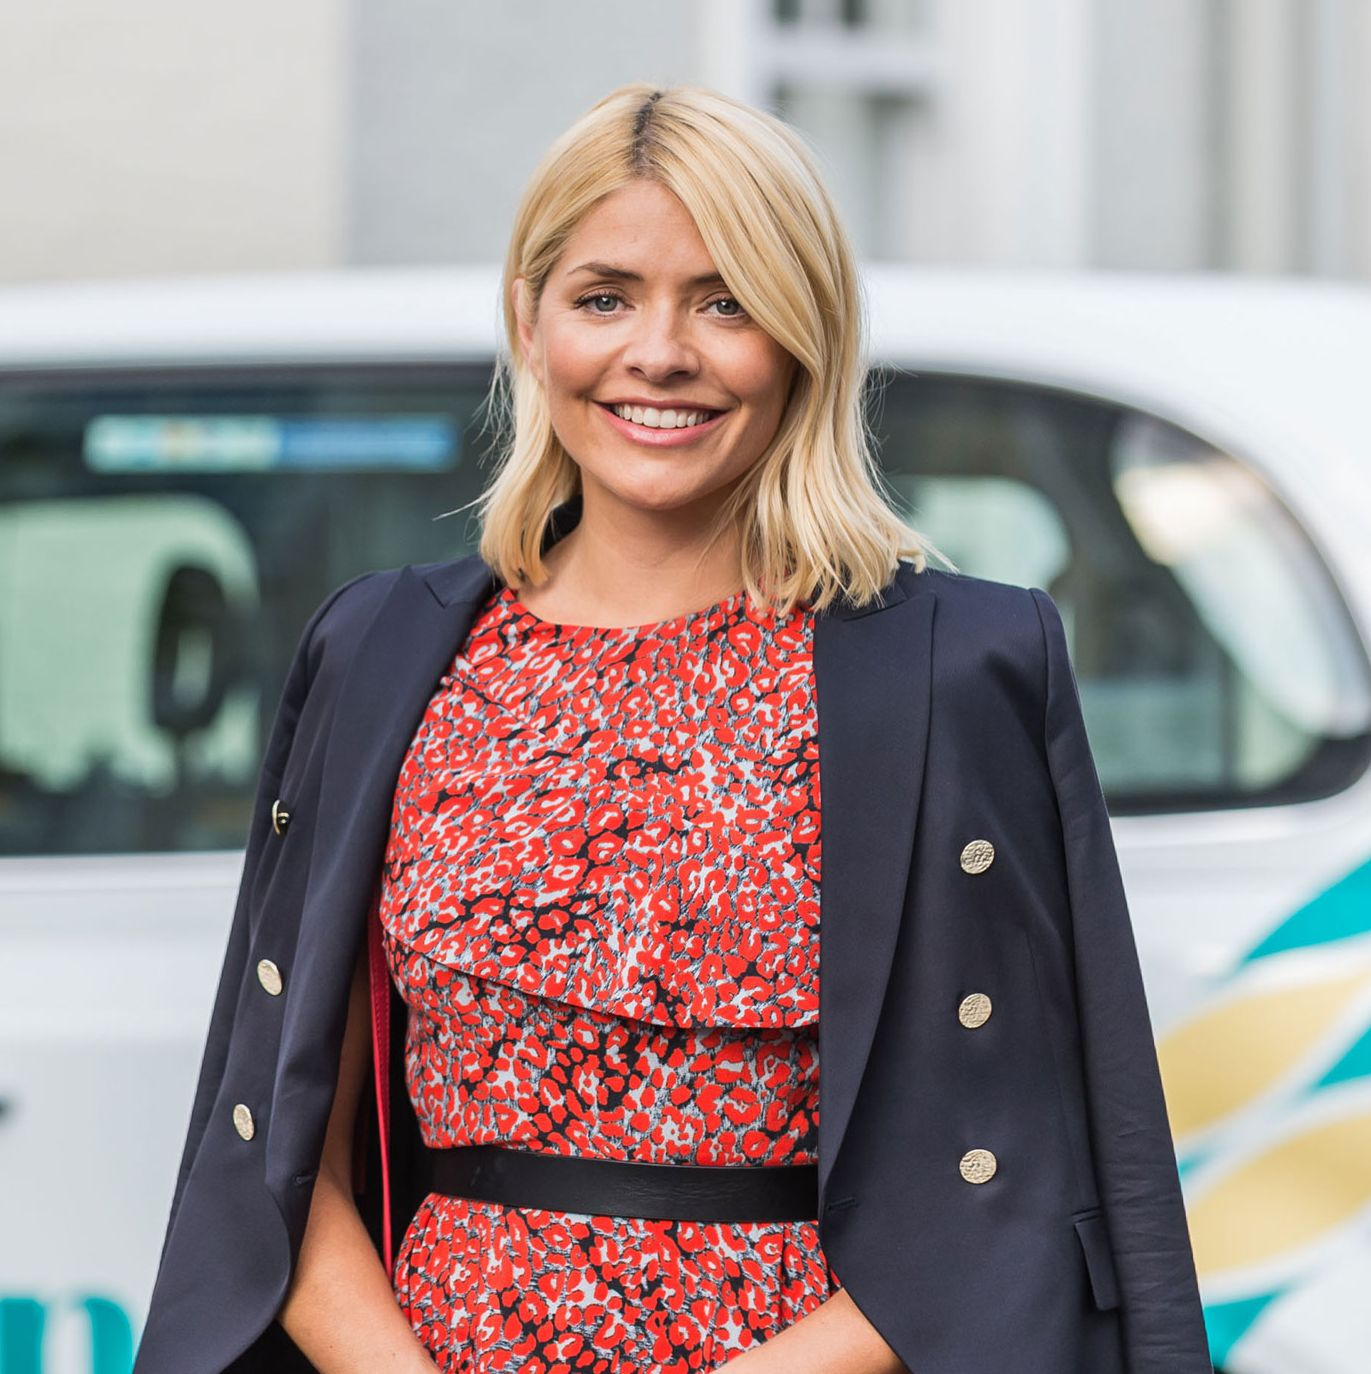 One thing This Morning's Holly Willoughby will never be caught talking about